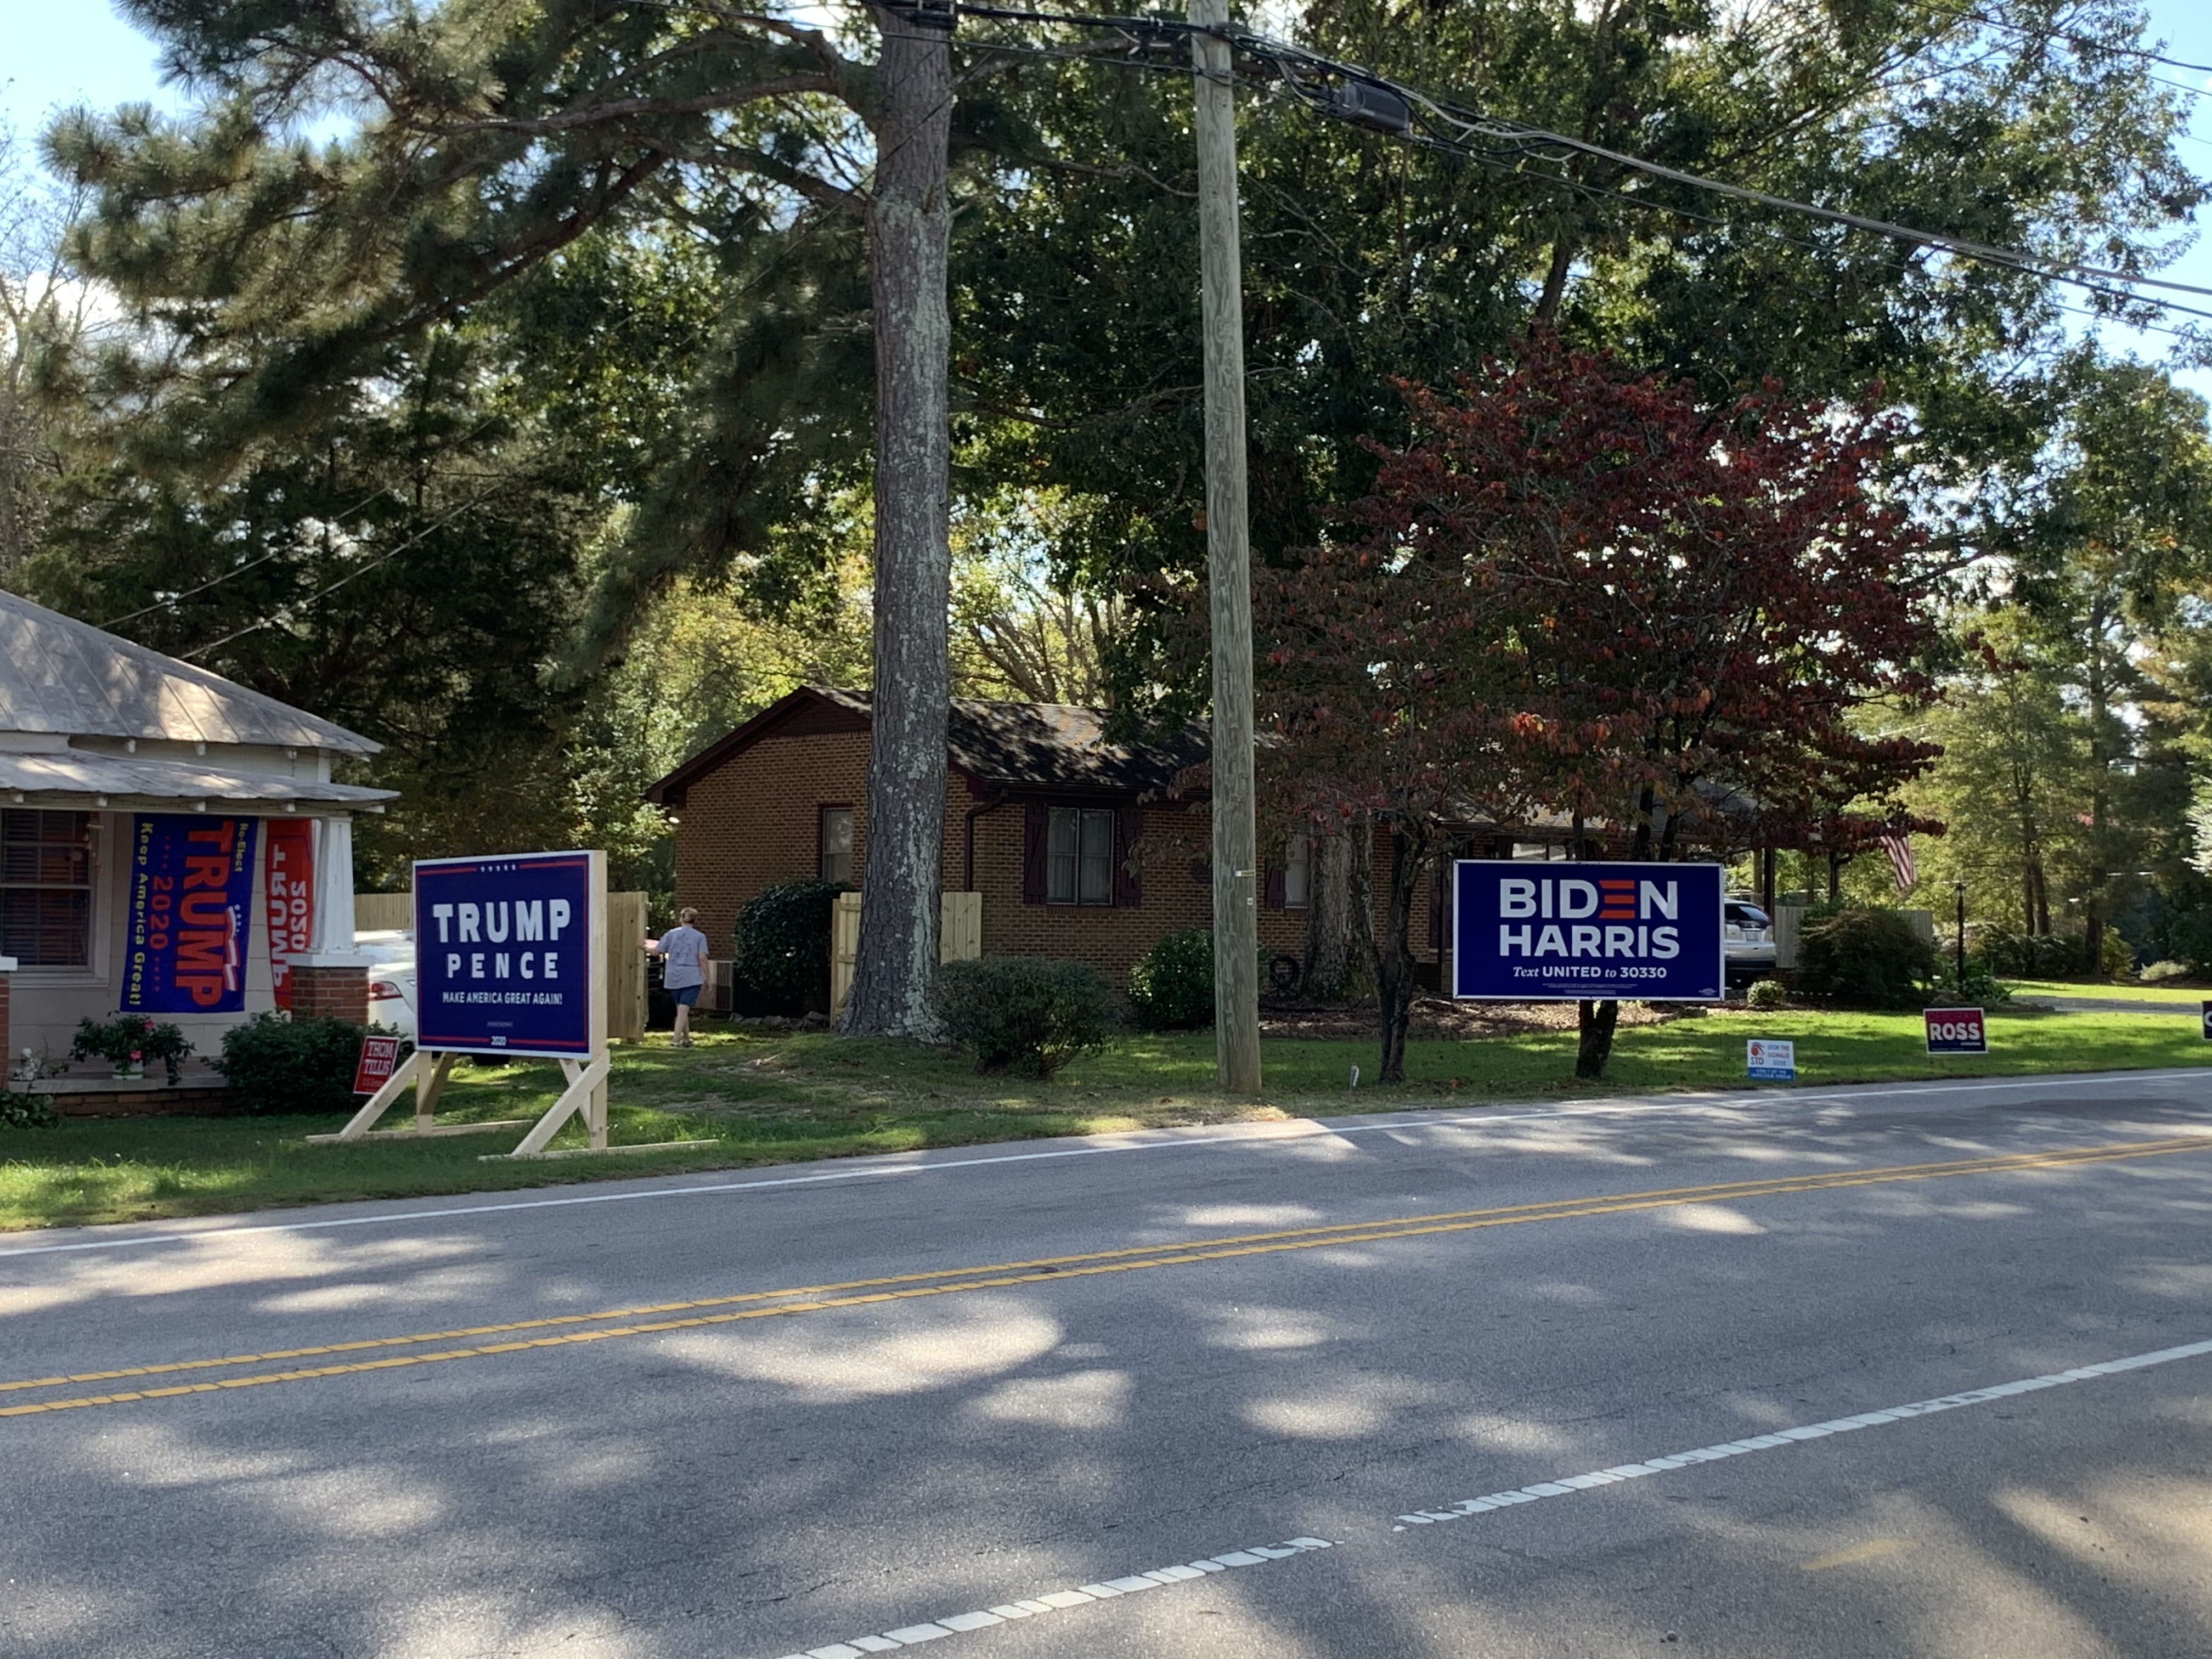 One house has a giant Trump/Pence sign and the other has a giant Biden/Harris sign